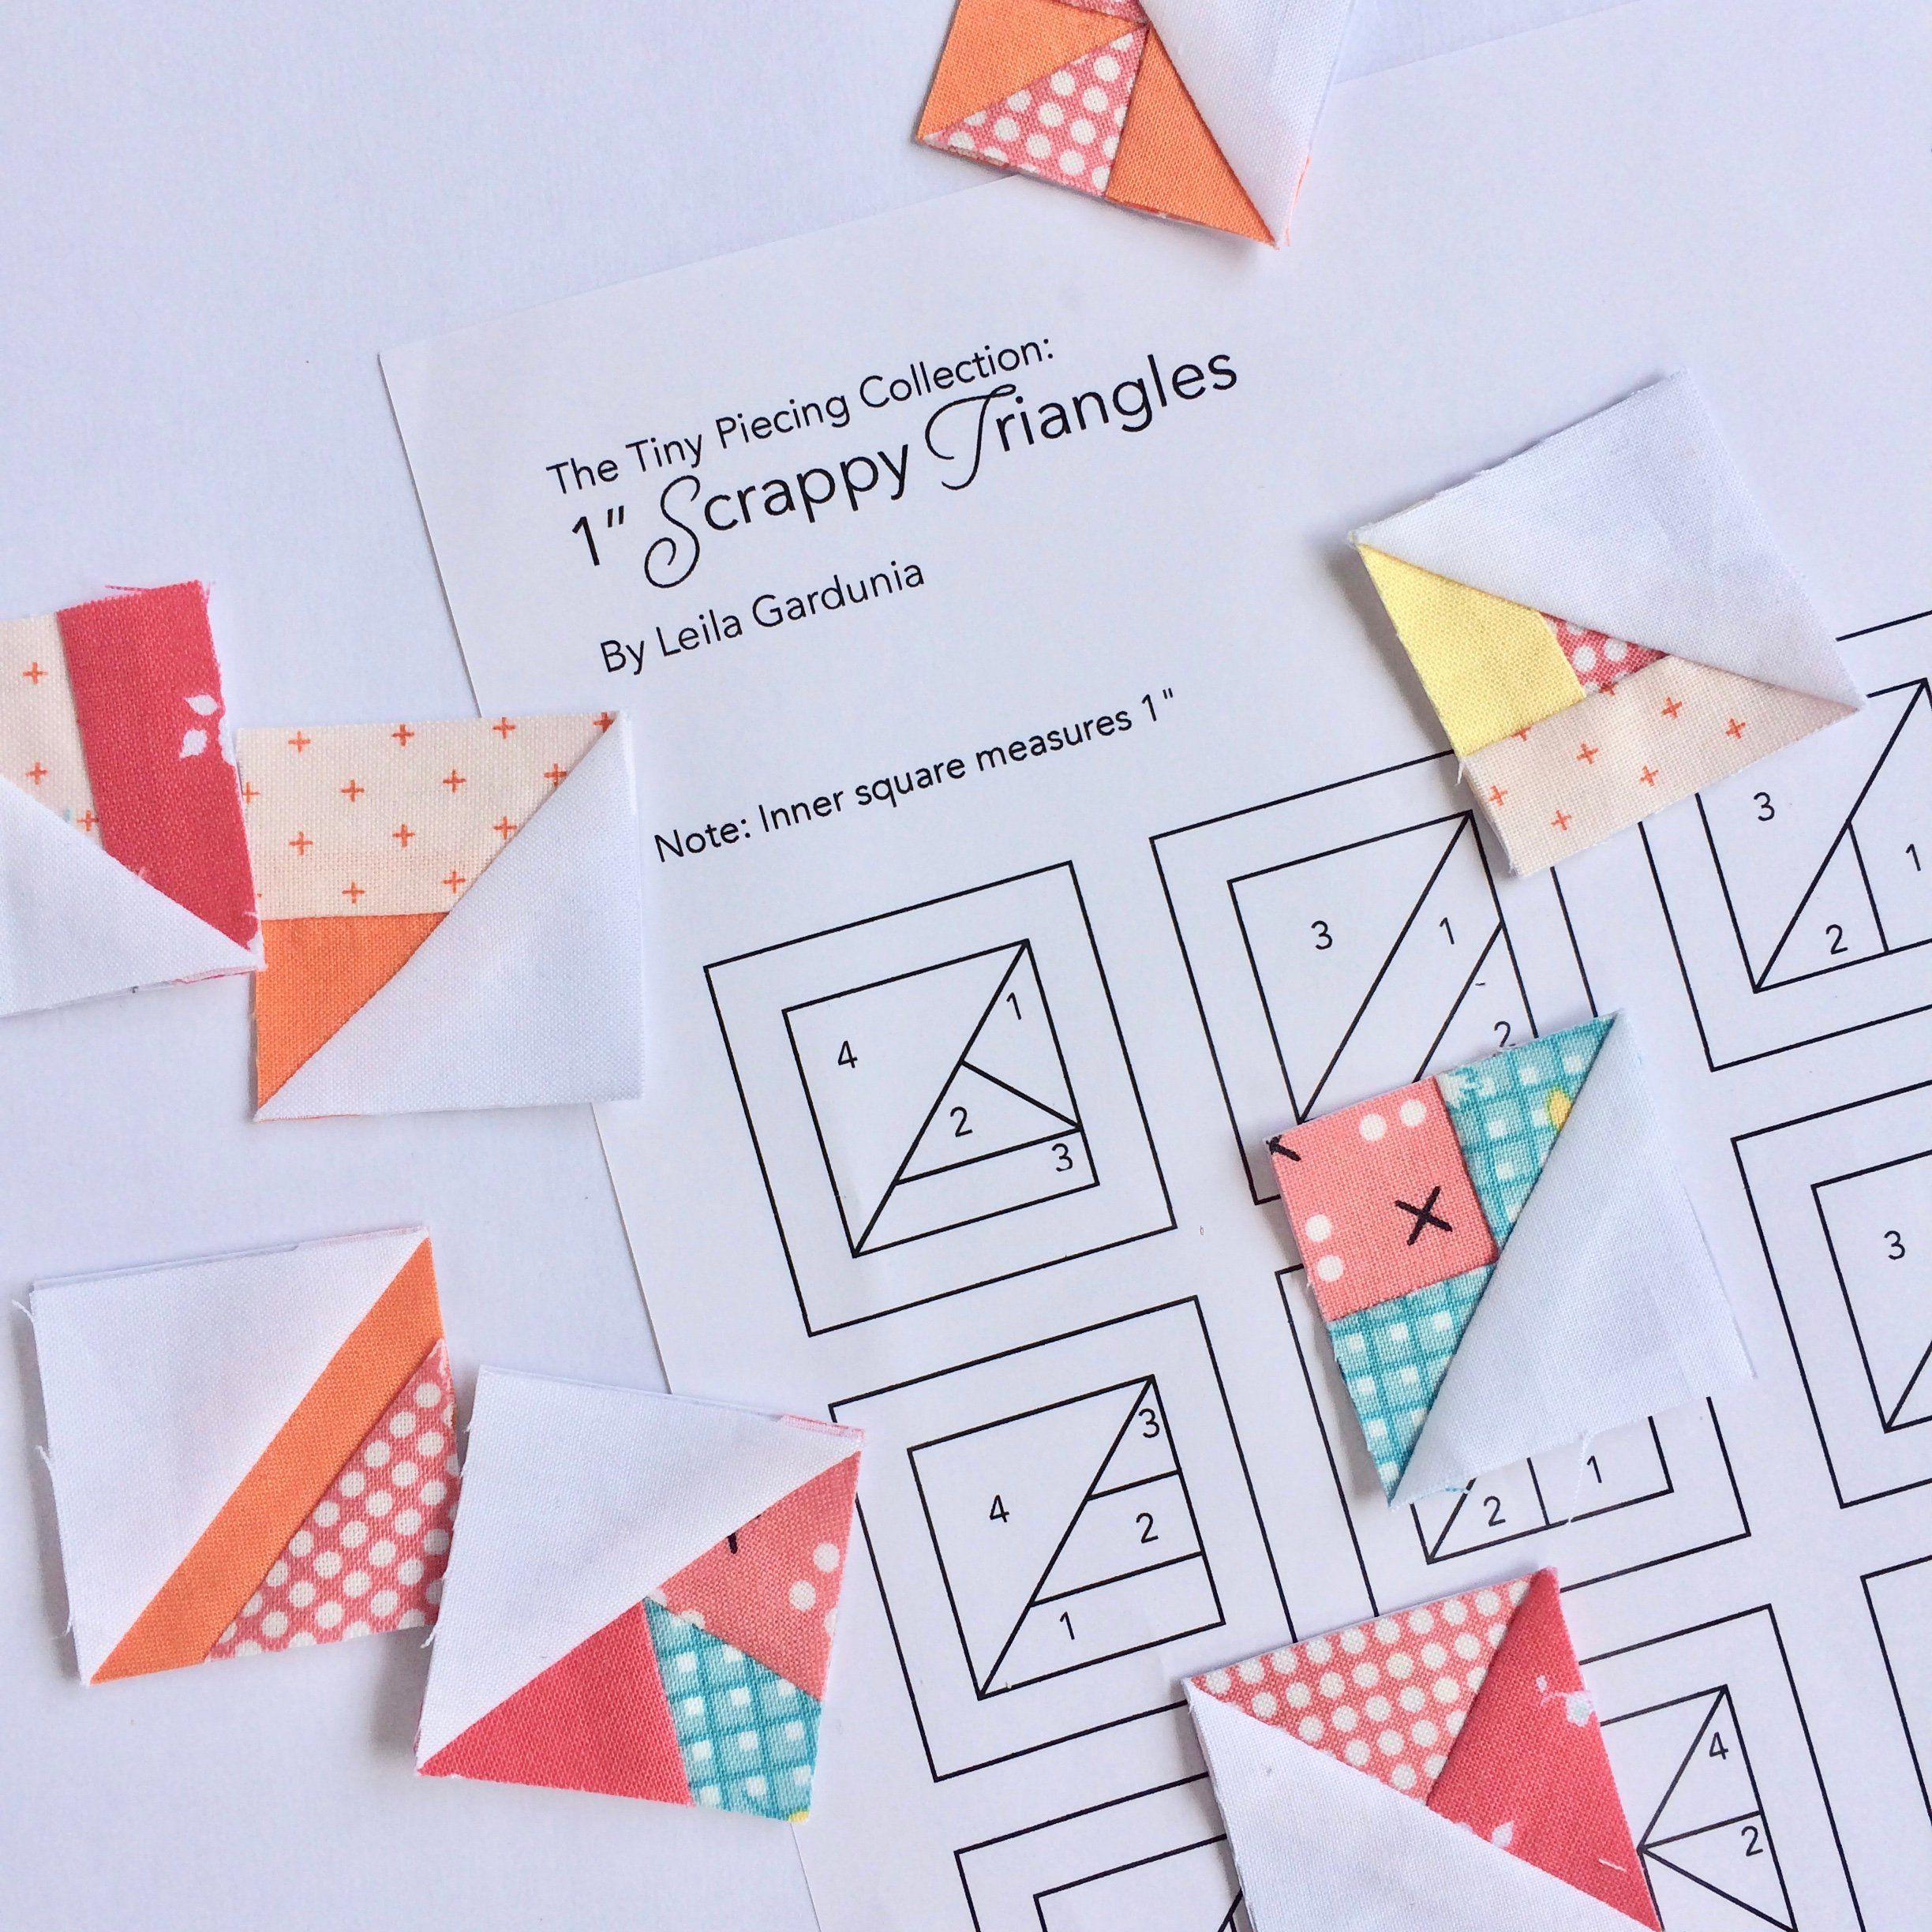 1 Scrappy Triangles From The Tiny Piecing Collection Etsy Paper Piecing Patterns Foundation Paper Piecing Paper Pieced Quilt Patterns